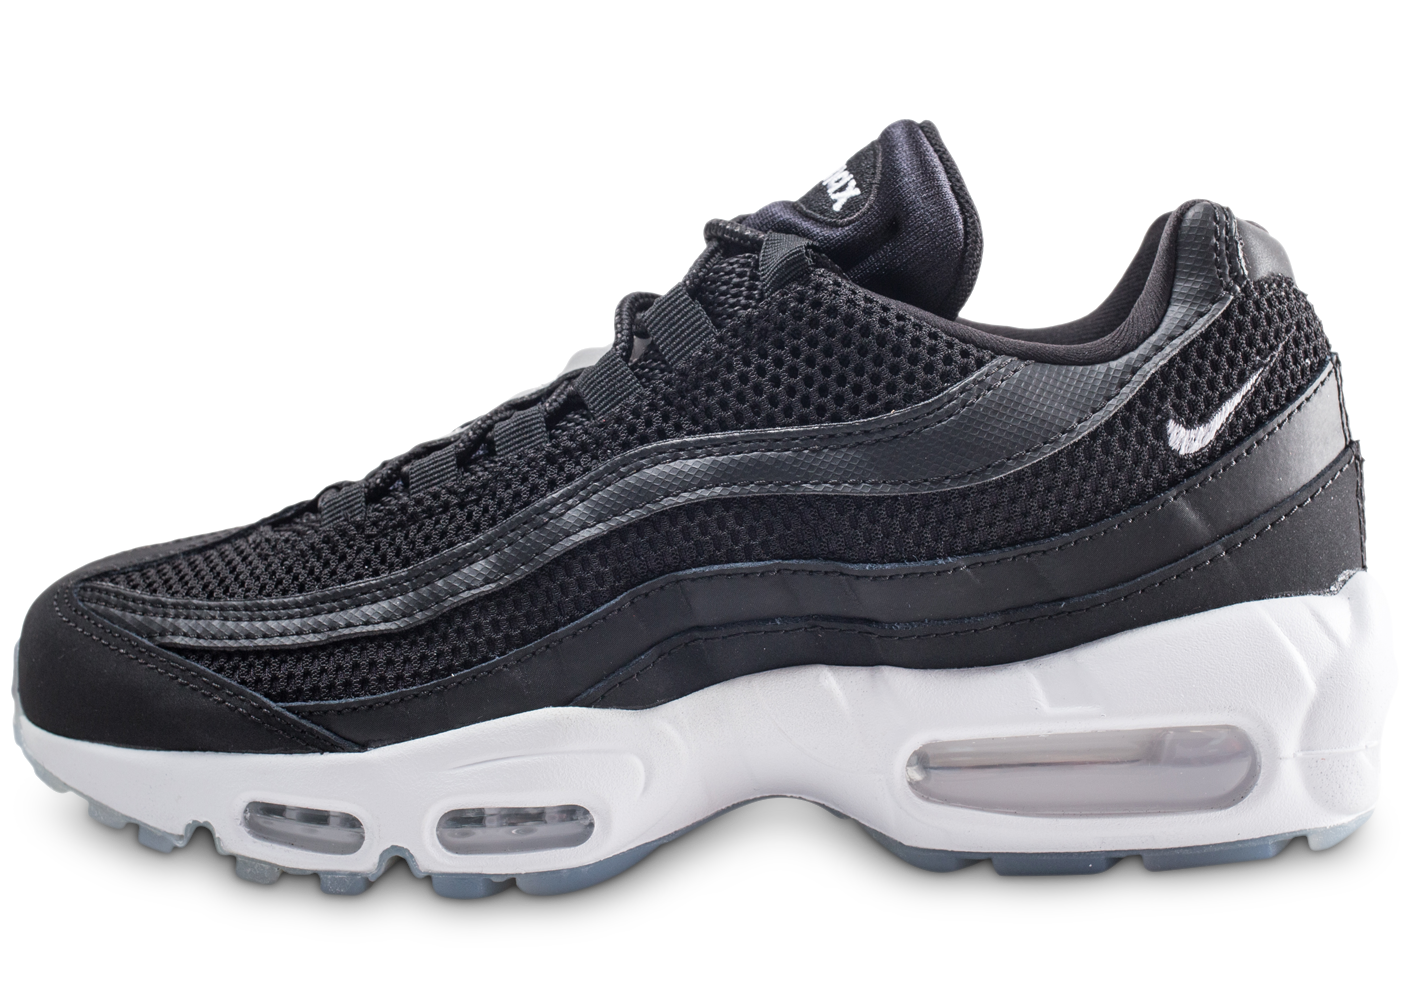 the latest d8fde 2b42c Nike homme air max 95 essential noire et argent.